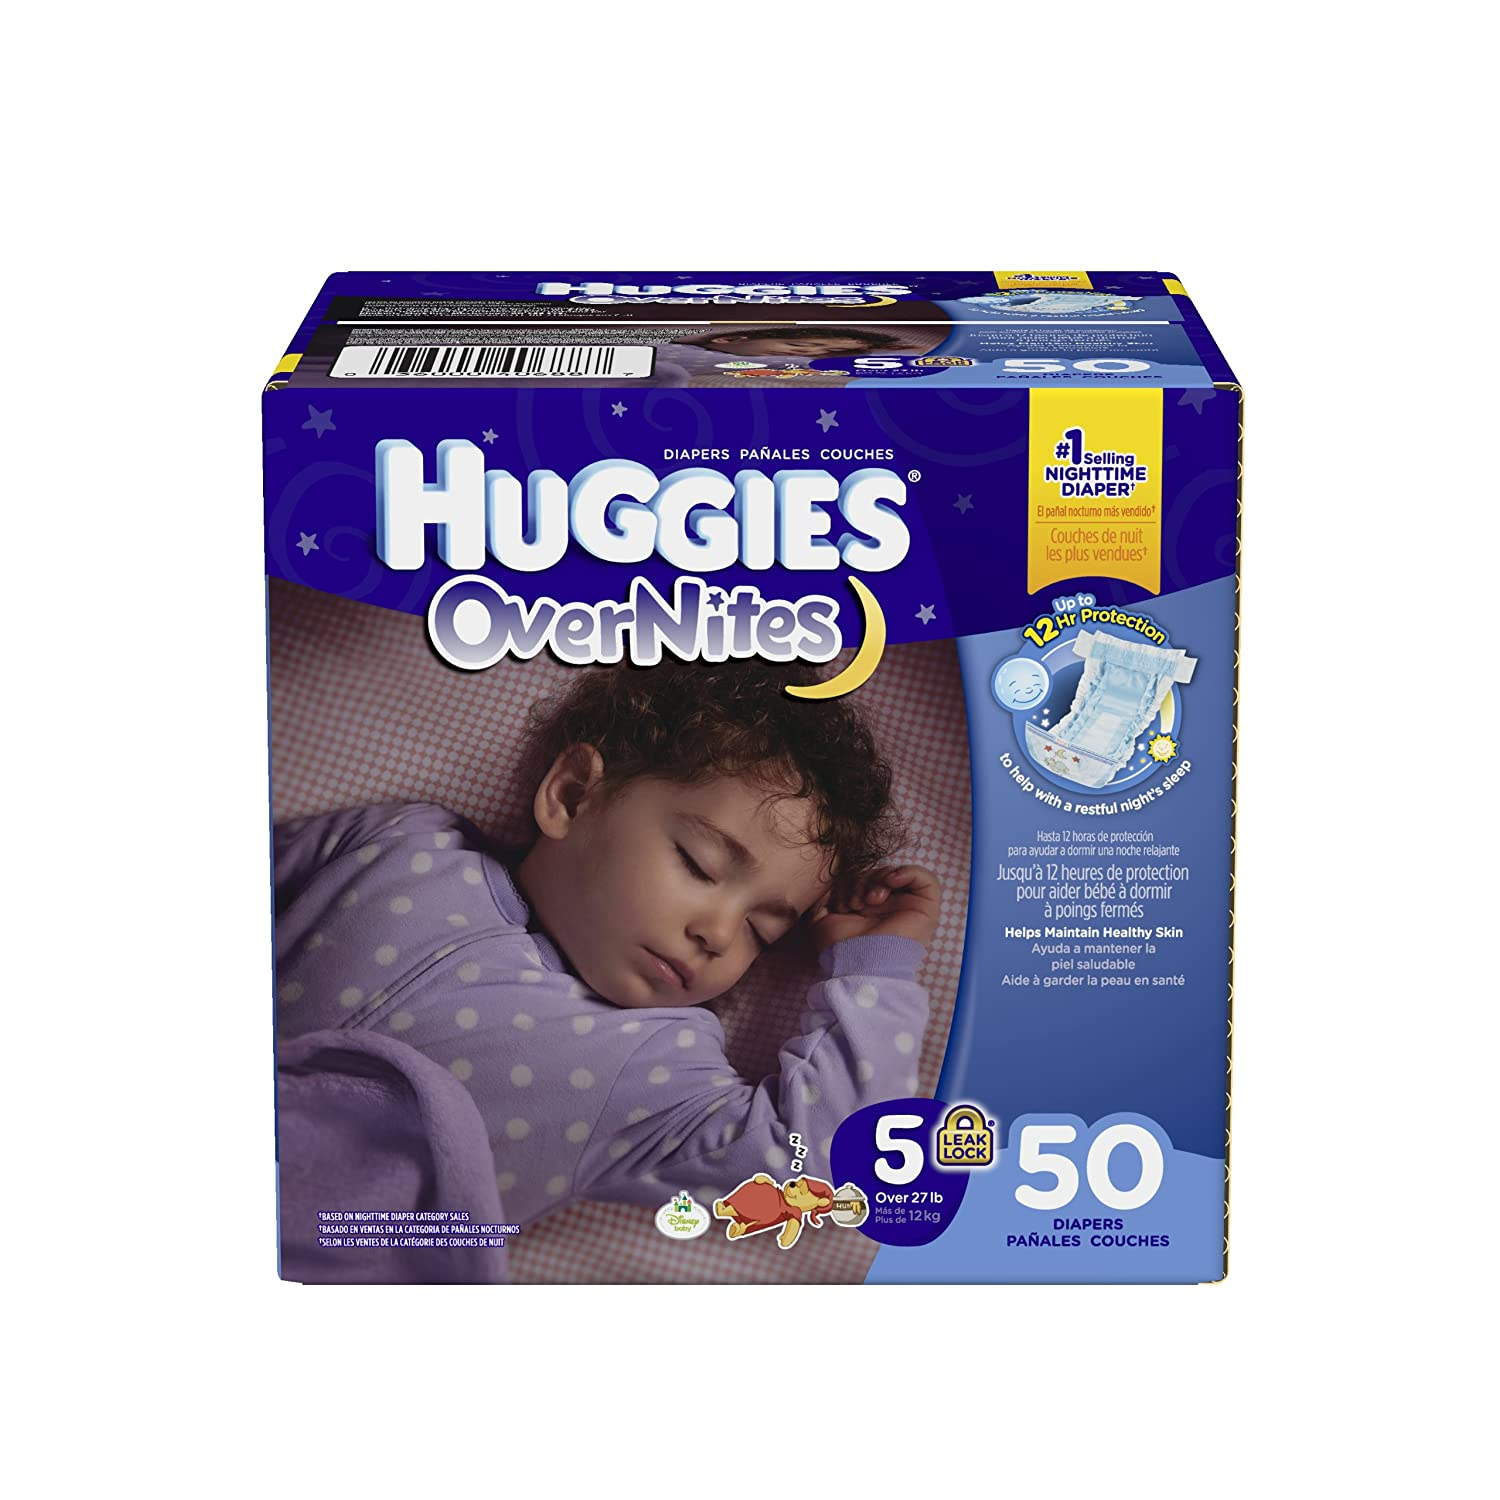 Hi all, We've been using Huggies Pure & Natural diapers for our 21 month year old since, essentailly she was a tiny infant. Other diapers give her a terrible rash (we've tried several).